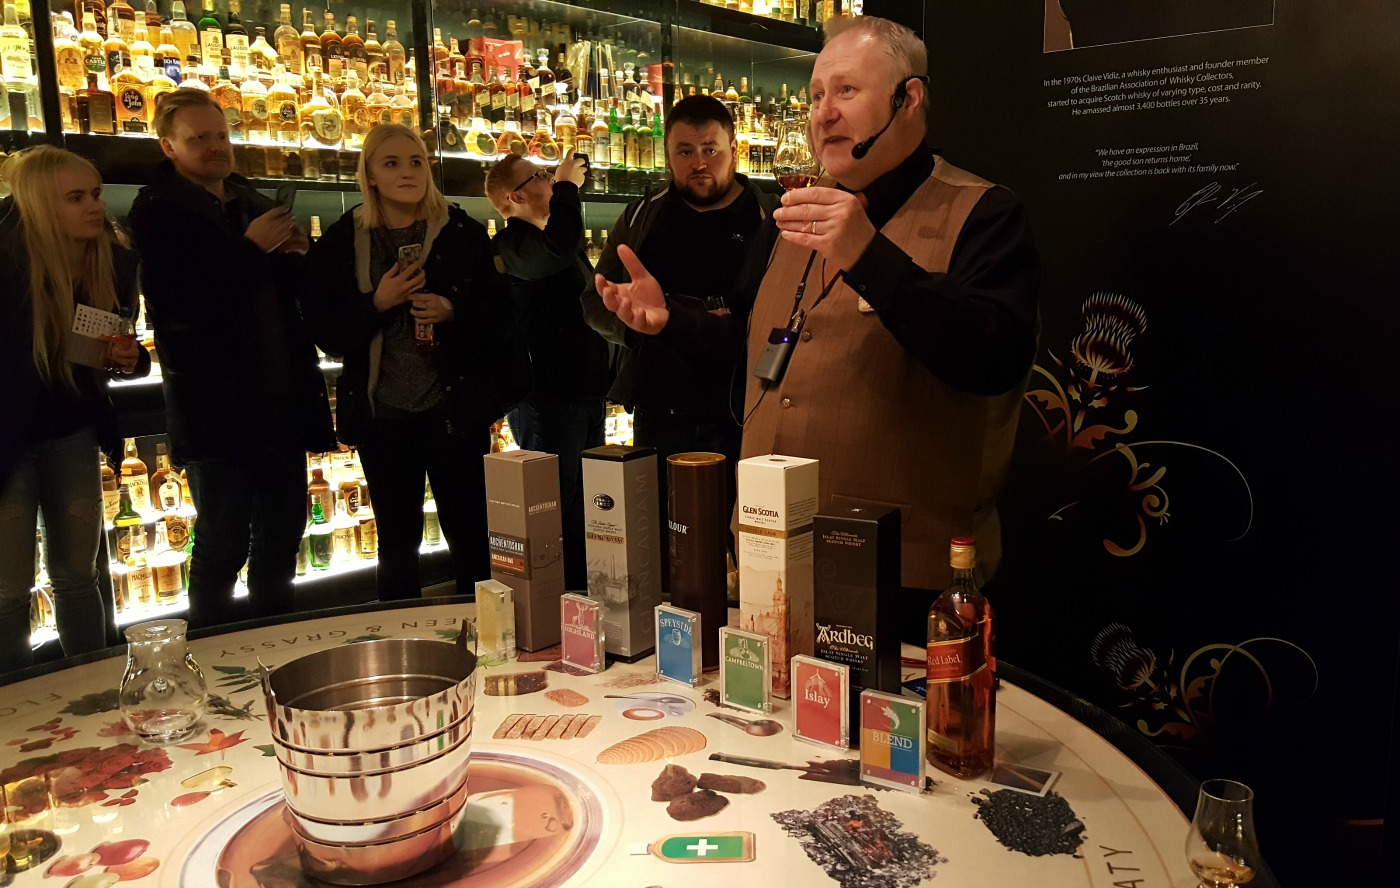 The Scotch Whisky Experience tour guide